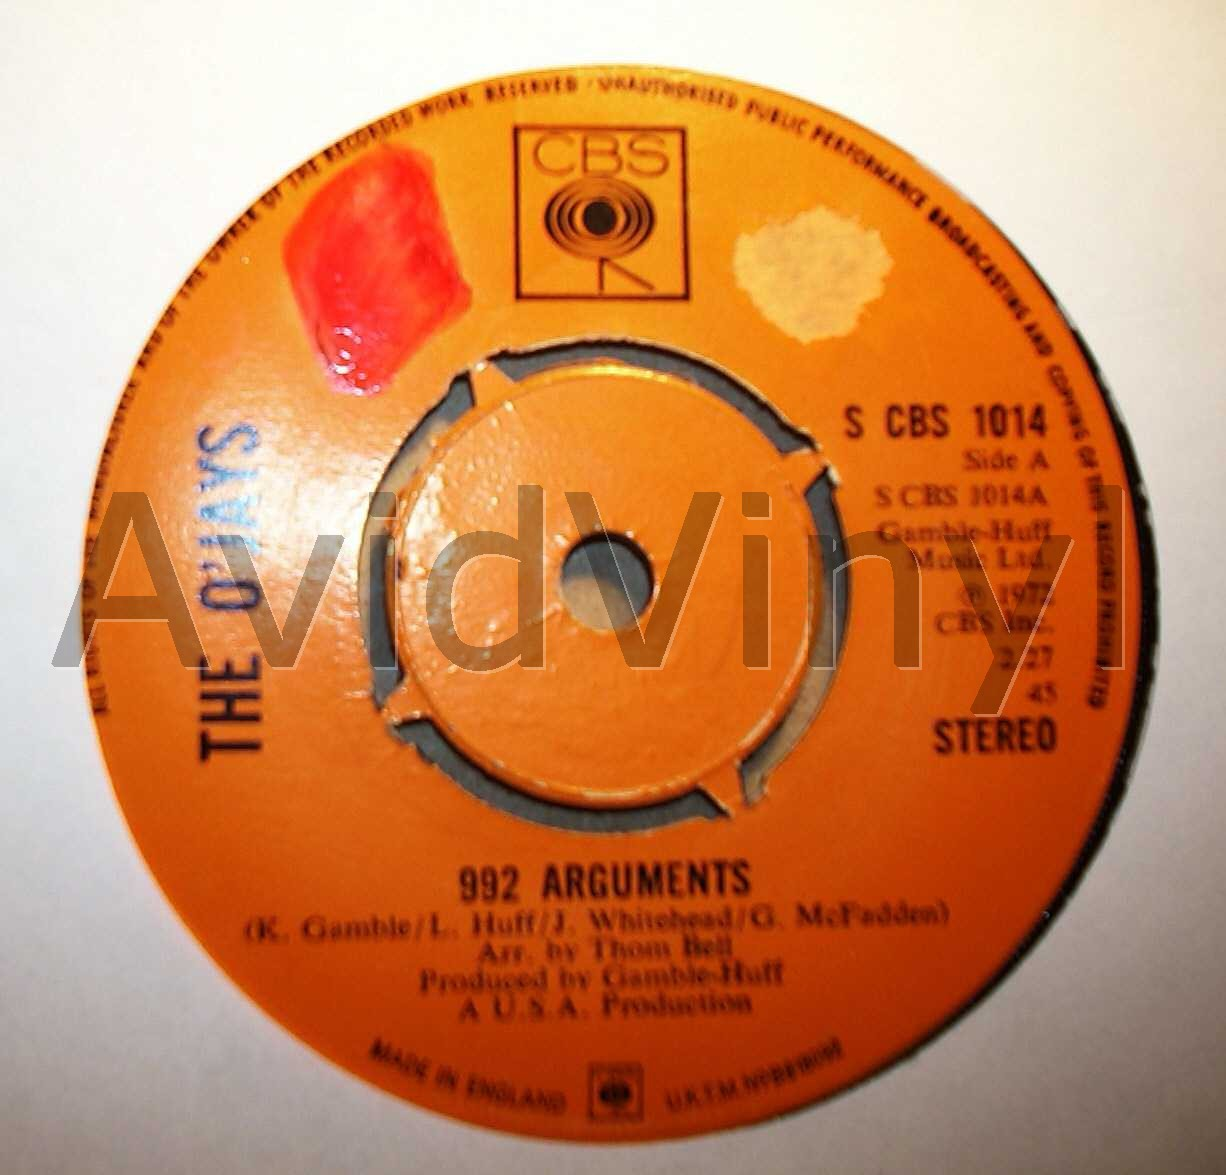 992 ARGUMENTS LISTEN TO THE CLOCK ON THE WALL by O JAYS